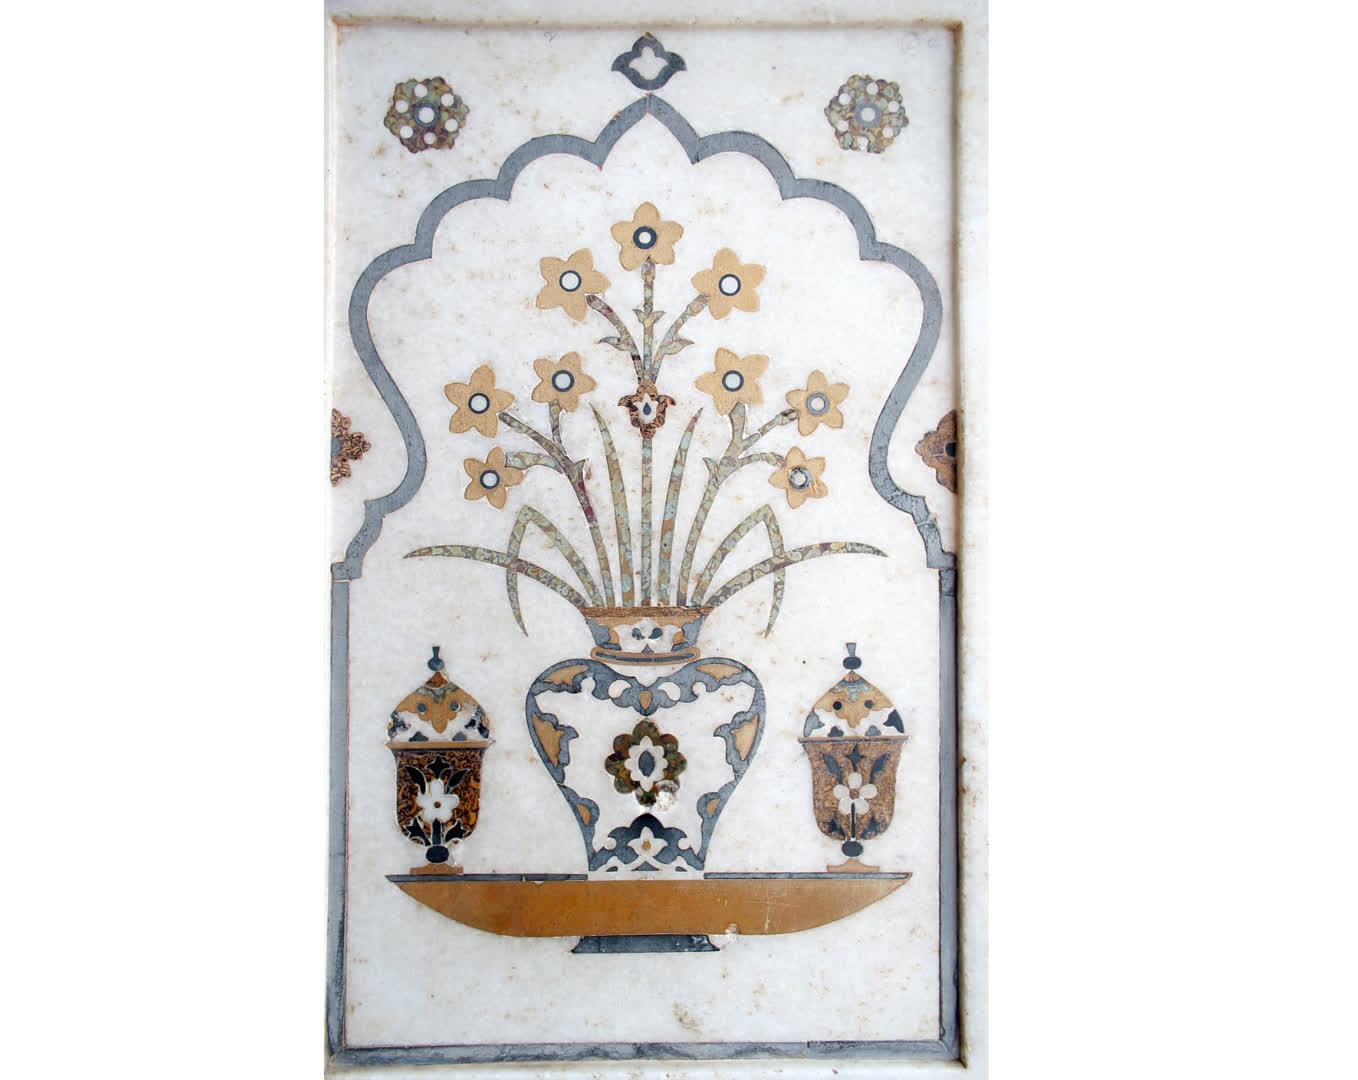 Motif detail from the tomb of Itmad-ud-Daula